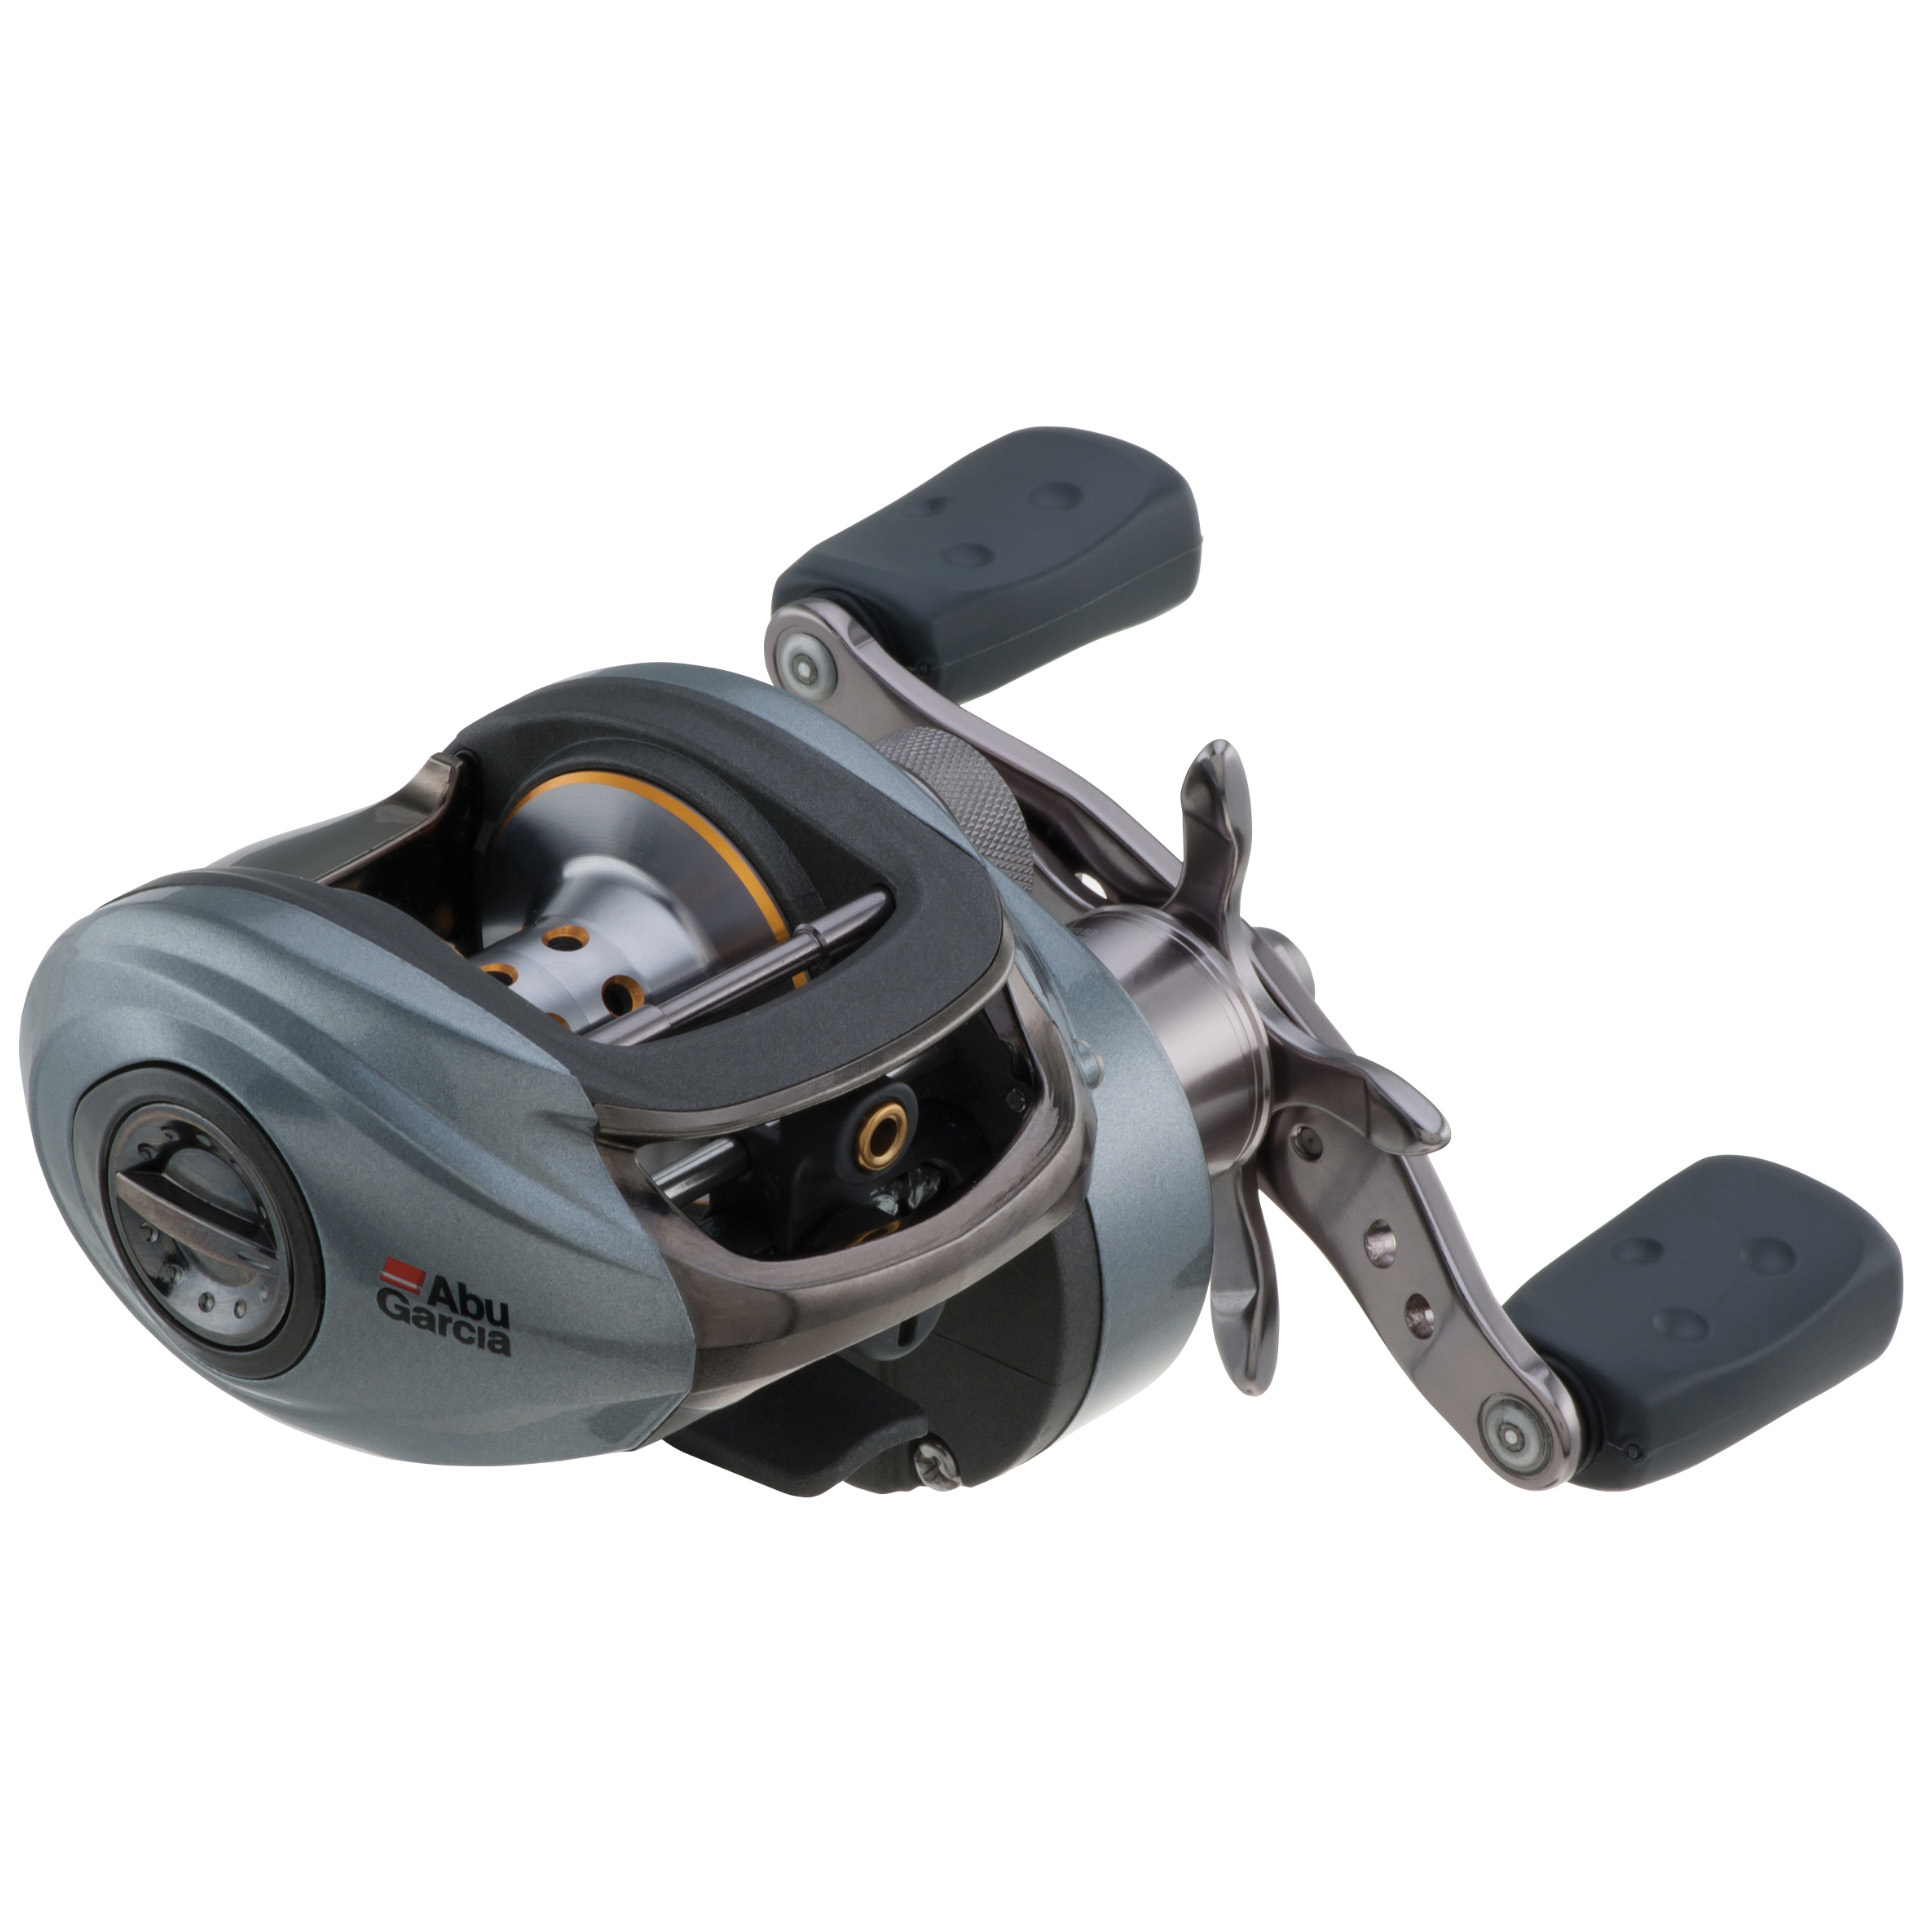 Abu Garcia OrraTM SX Low-profile Left Hand Baitcasting Reel. The right mix of performance, reliability, and comfort for the discerning southpaw. The OrraTM SX is built from a durable lightweight aluminum frame and spool, which provide reliability and performance day in and day out. Its 8-bearing system creates a smooth retrieve, and when paired with the Pitch Centrifugal Brake, offers remarkable cast control. Left hand retrieve.Specs:7 stainless steel ball bearings + 1 roller bearing for smooth operation X-CrfticTM alloy frame for increased corrosion resistance Graphite sideplates Smooth performing Power Disk drag system provides up to 15 pounds of drag. MagTraxTM brake system gives consistent brake pressure throughout the cast Compact bent handle and star provide a more ergonomic design DuragearTM Brass Gear for extended gear life Gear ratio: 6.4:1 Mono capacity: 12 lbs. / 145 yds. Weighs 7 1/4 ozs. - $99.95